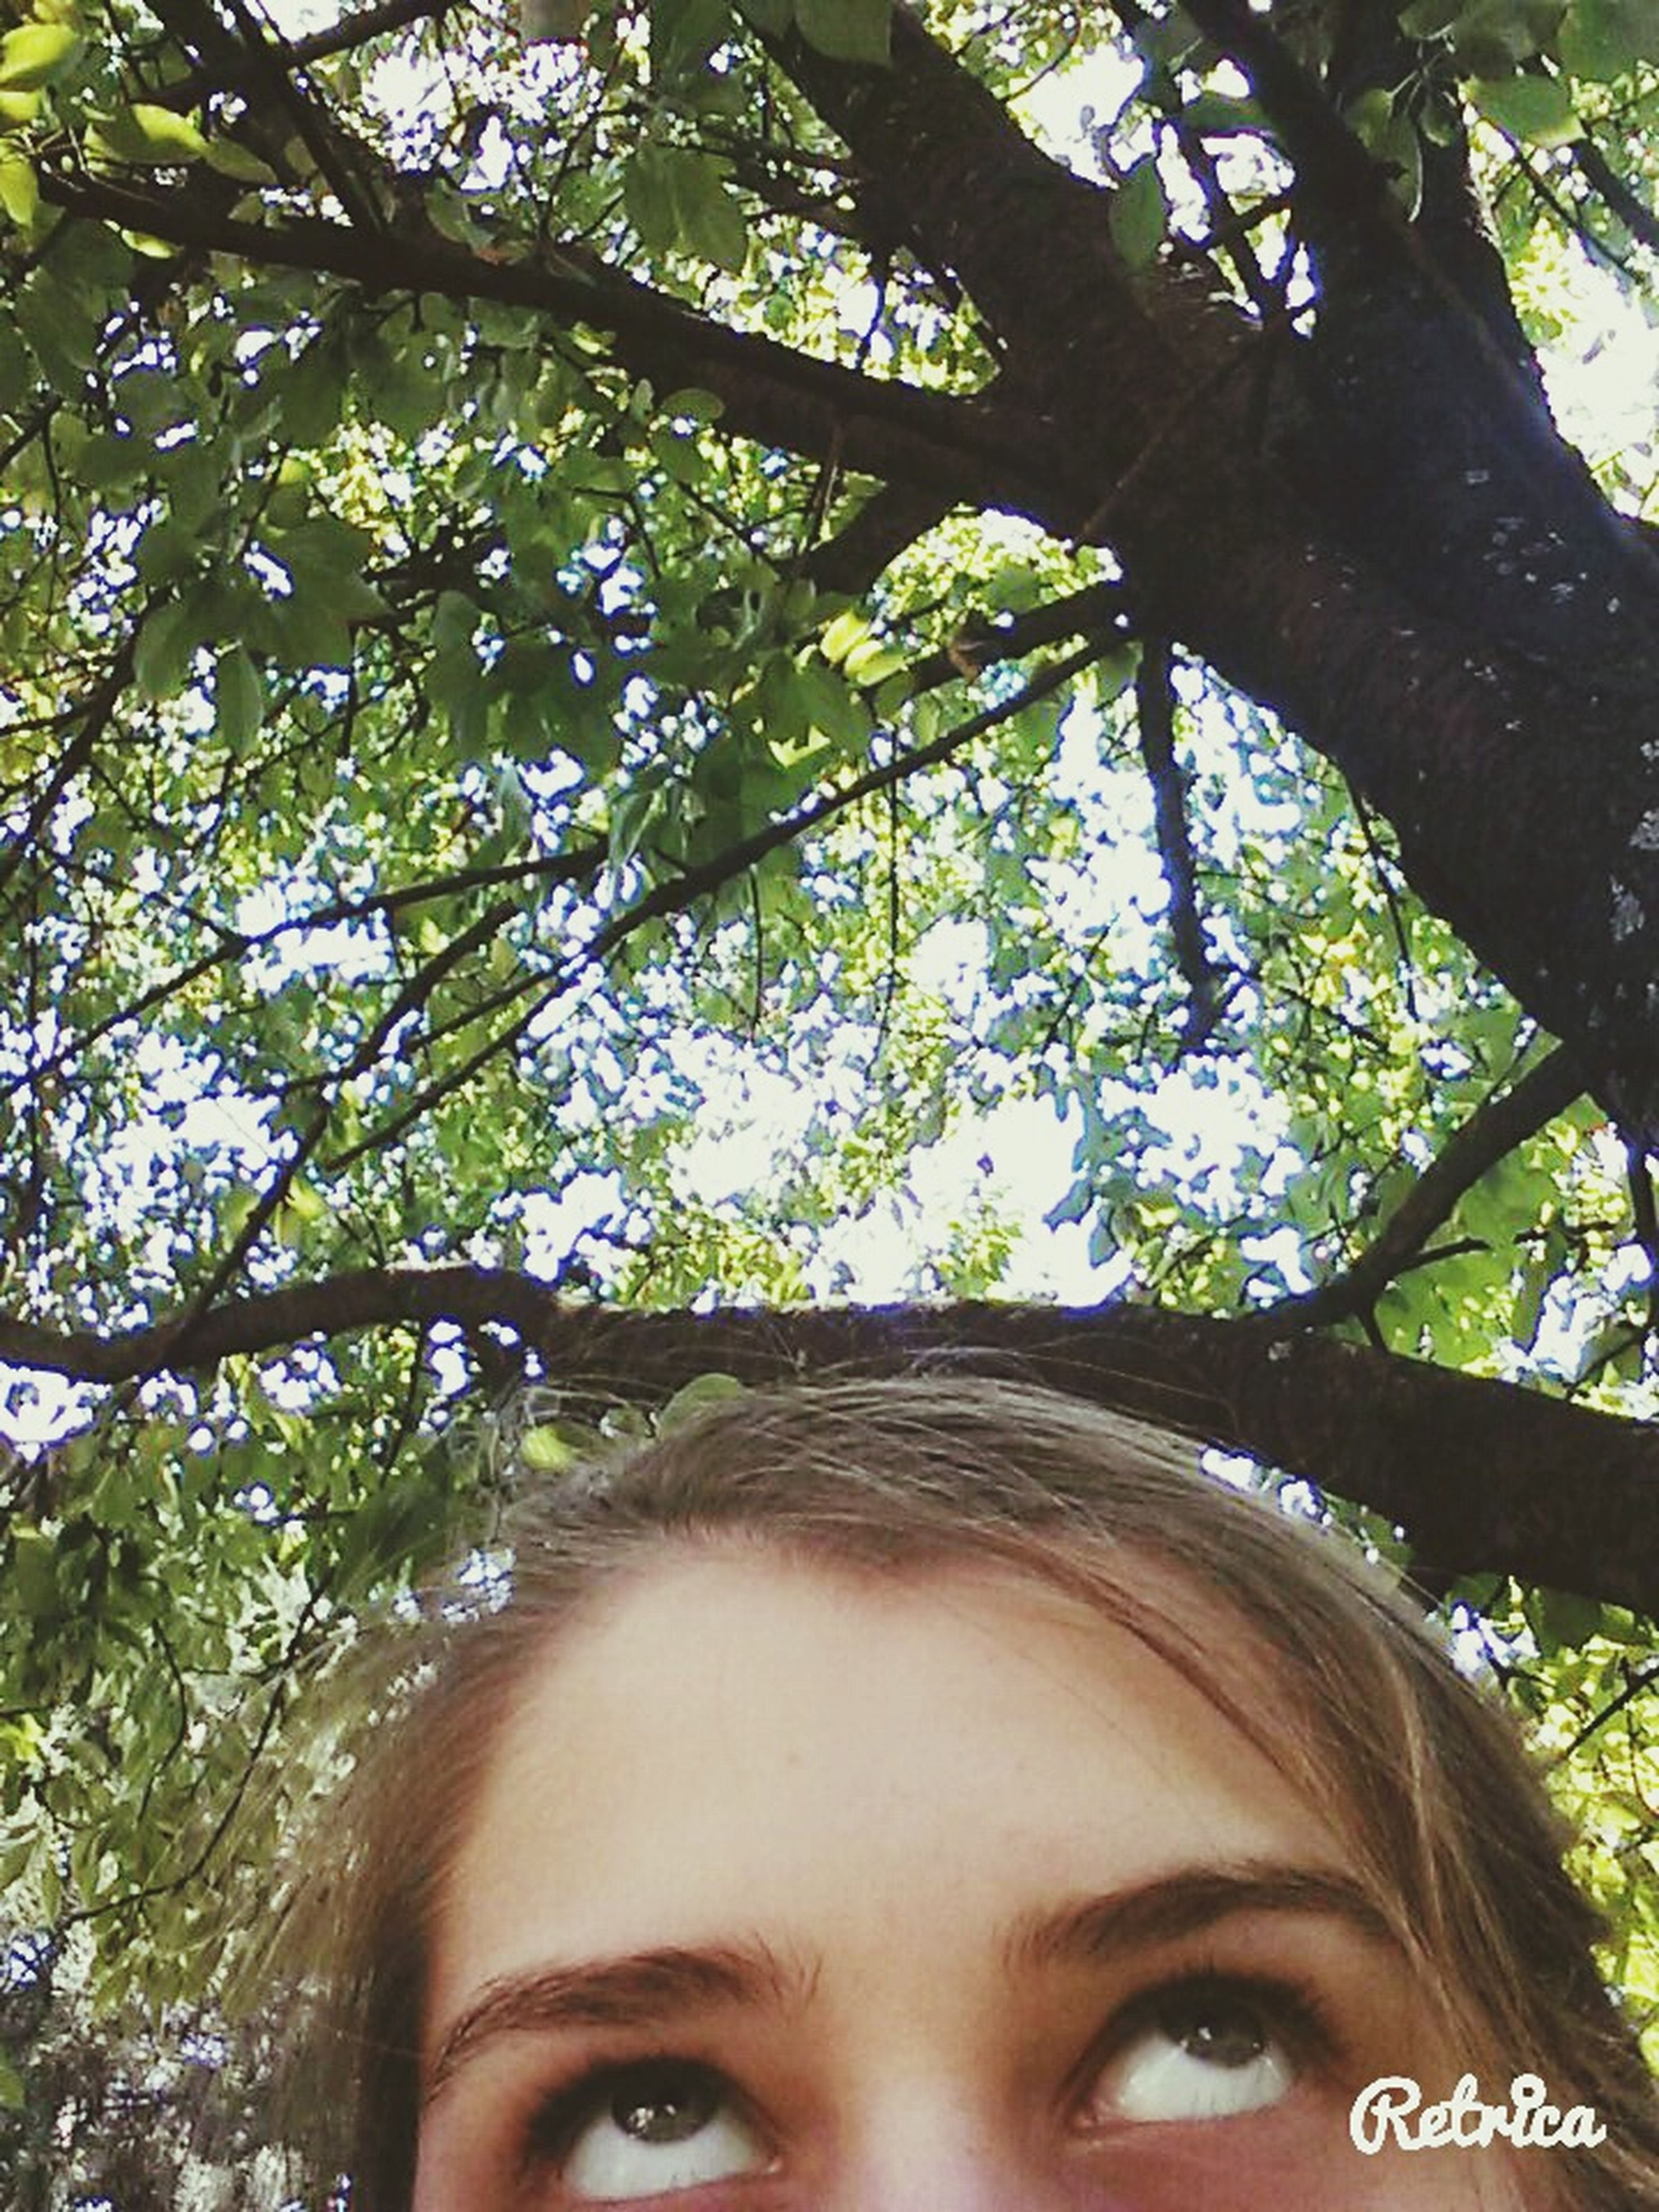 tree, headshot, young adult, lifestyles, person, low angle view, looking at camera, leisure activity, branch, portrait, front view, human face, close-up, young women, growth, day, head and shoulders, smiling